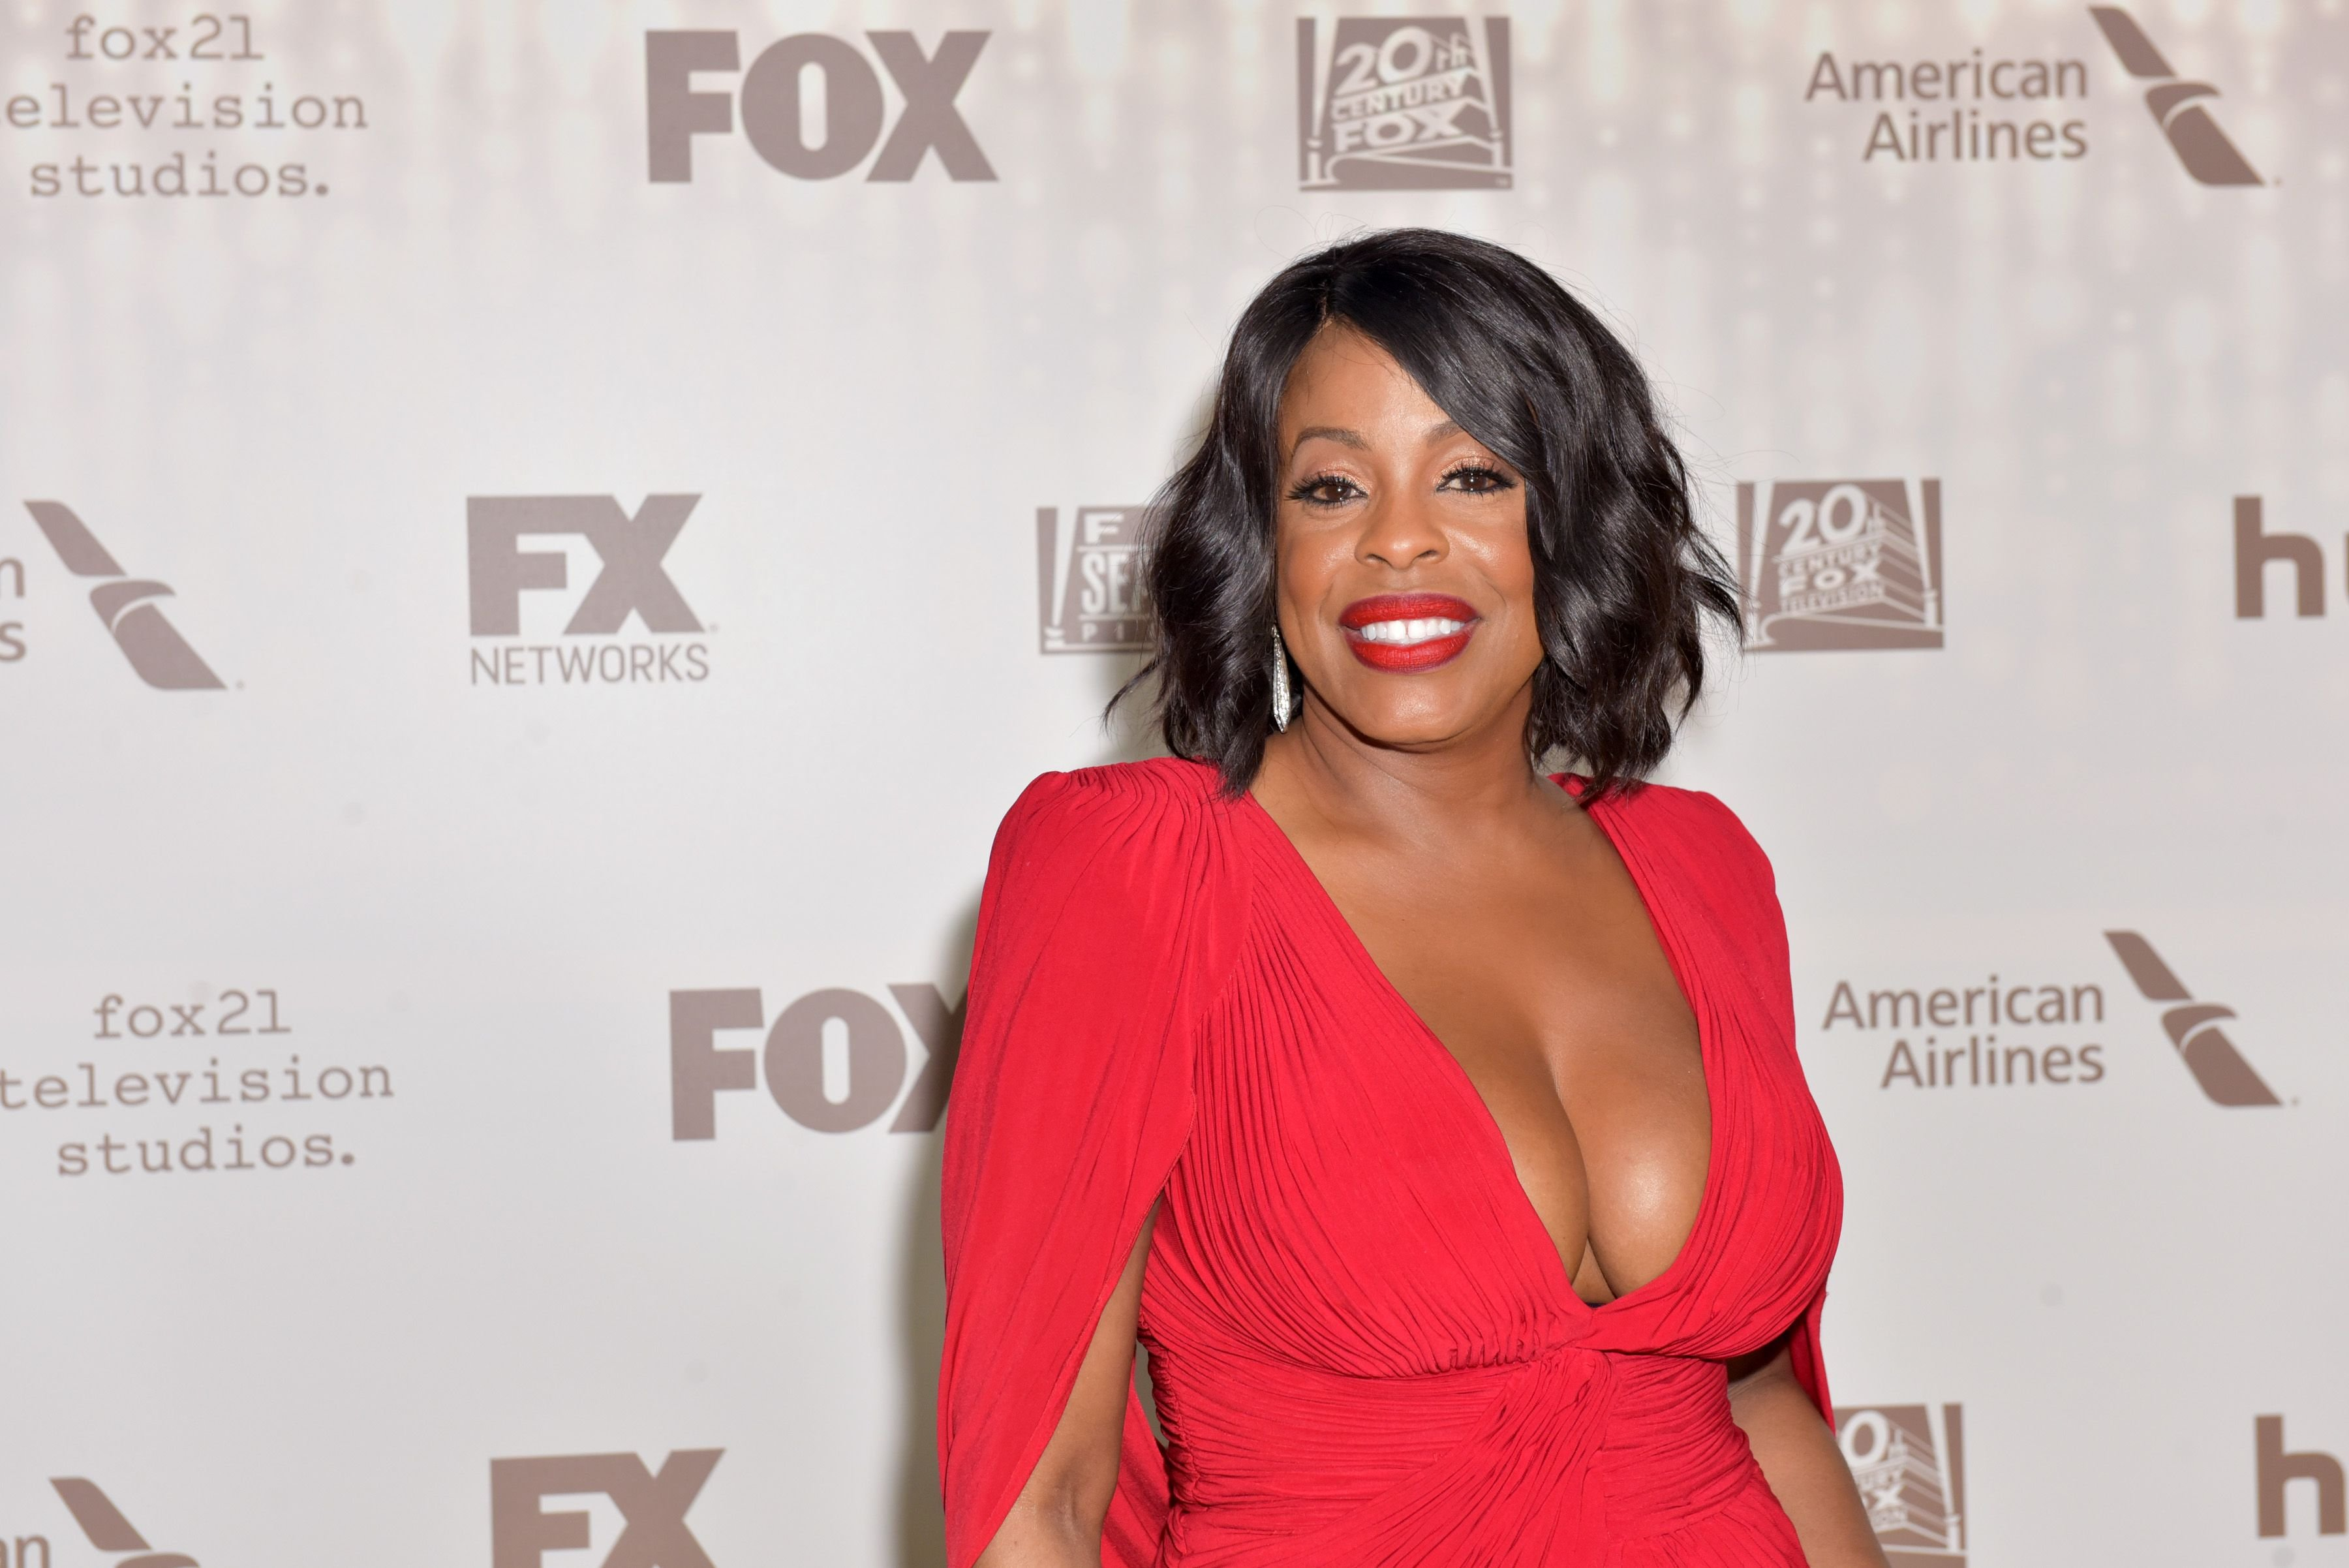 Niecy Nash during the FOX and FX's 2017 Golden Globe Awards after party at The Beverly Hilton Hotel on January 8, 2017 in Beverly Hills, California. | Source: Getty Images